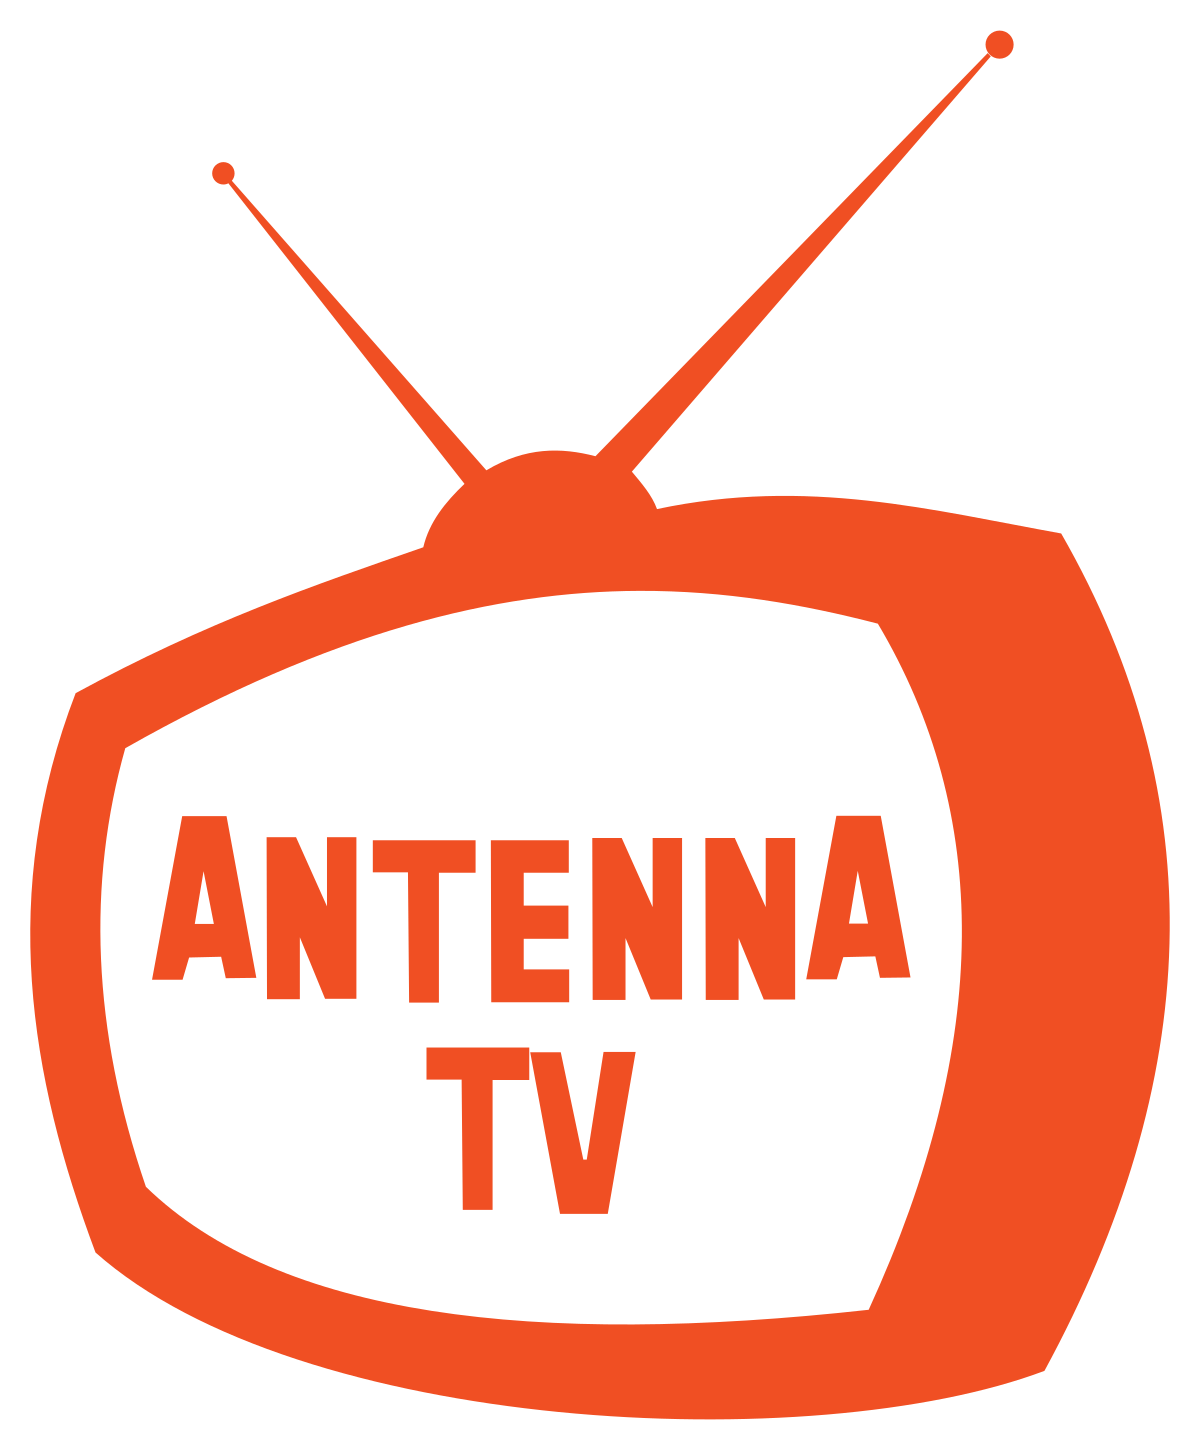 News clipart tv broadcasting. Antenna wikipedia